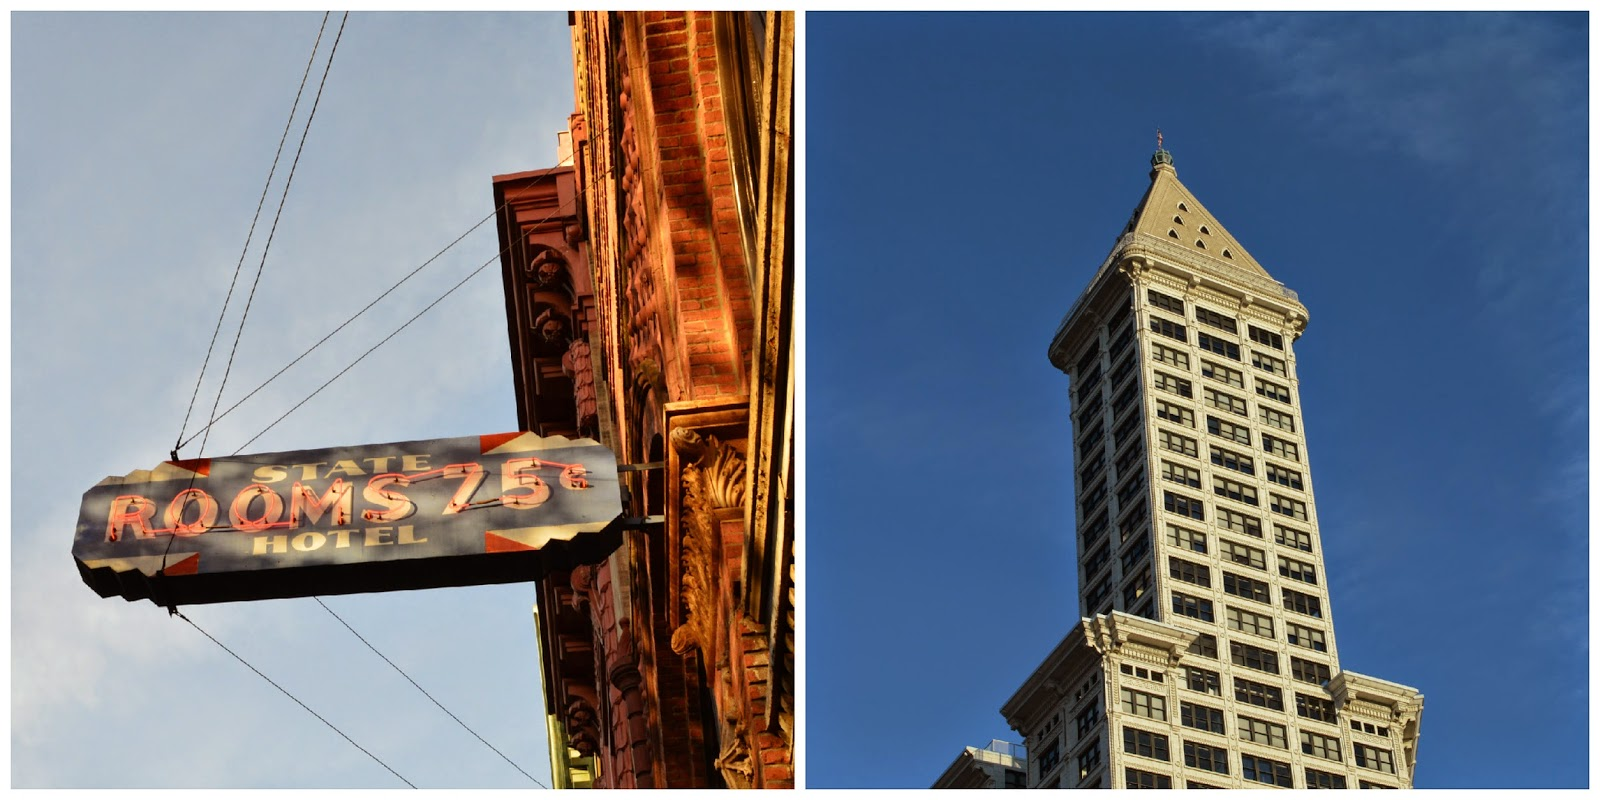 State hotel 75c sign. Smith tower. Seattle